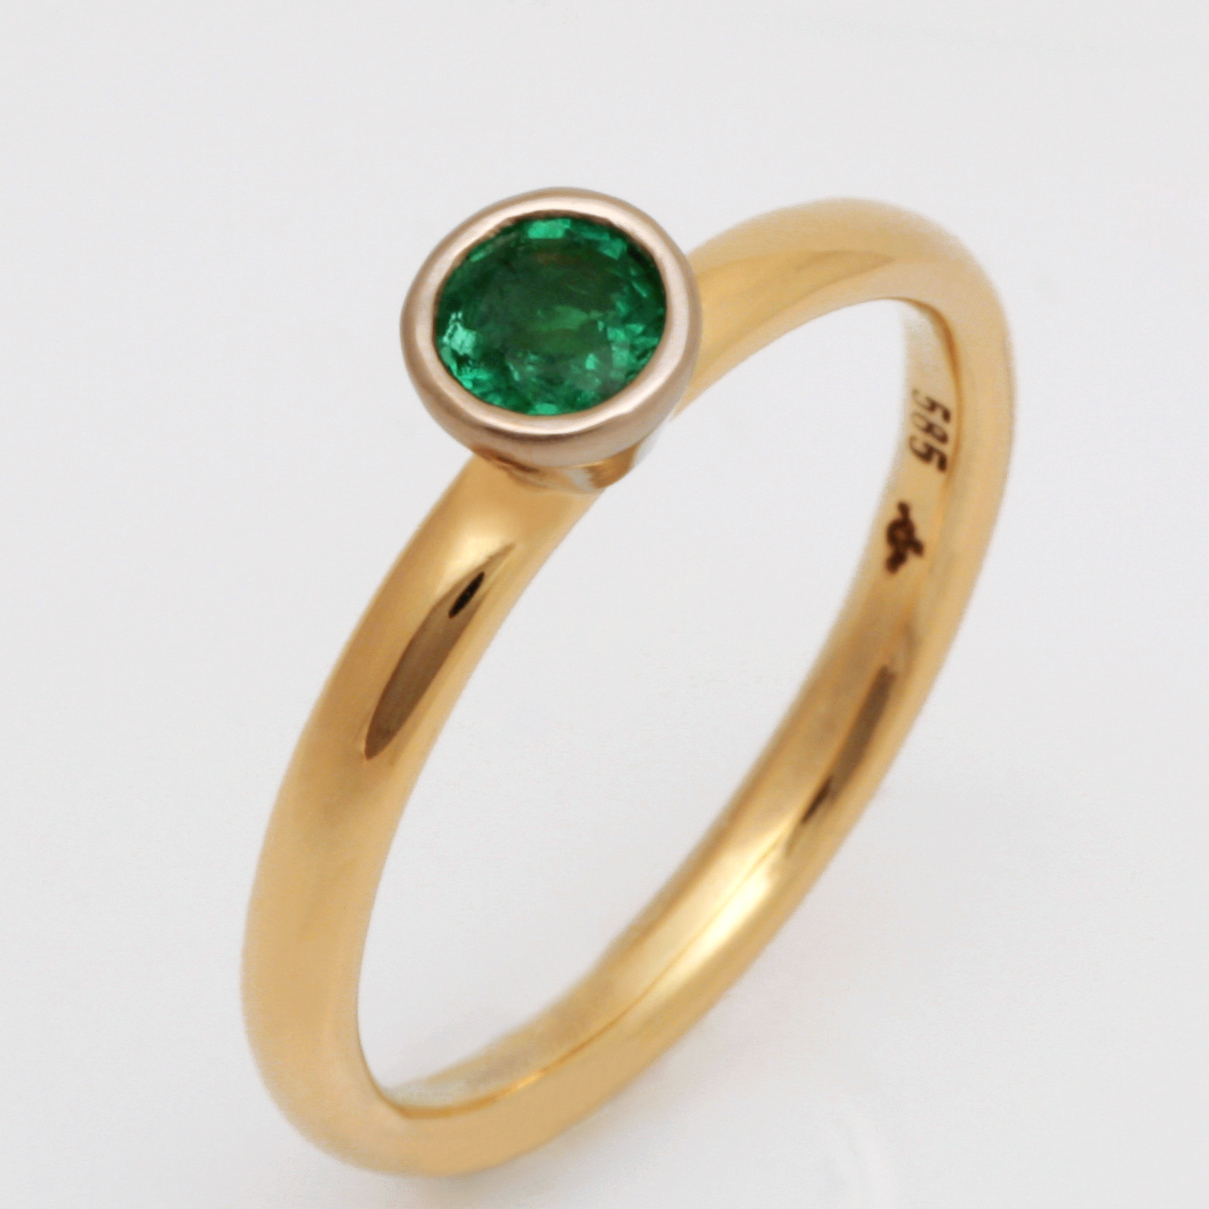 Handmade 14ct yellow gold natural emerald ring